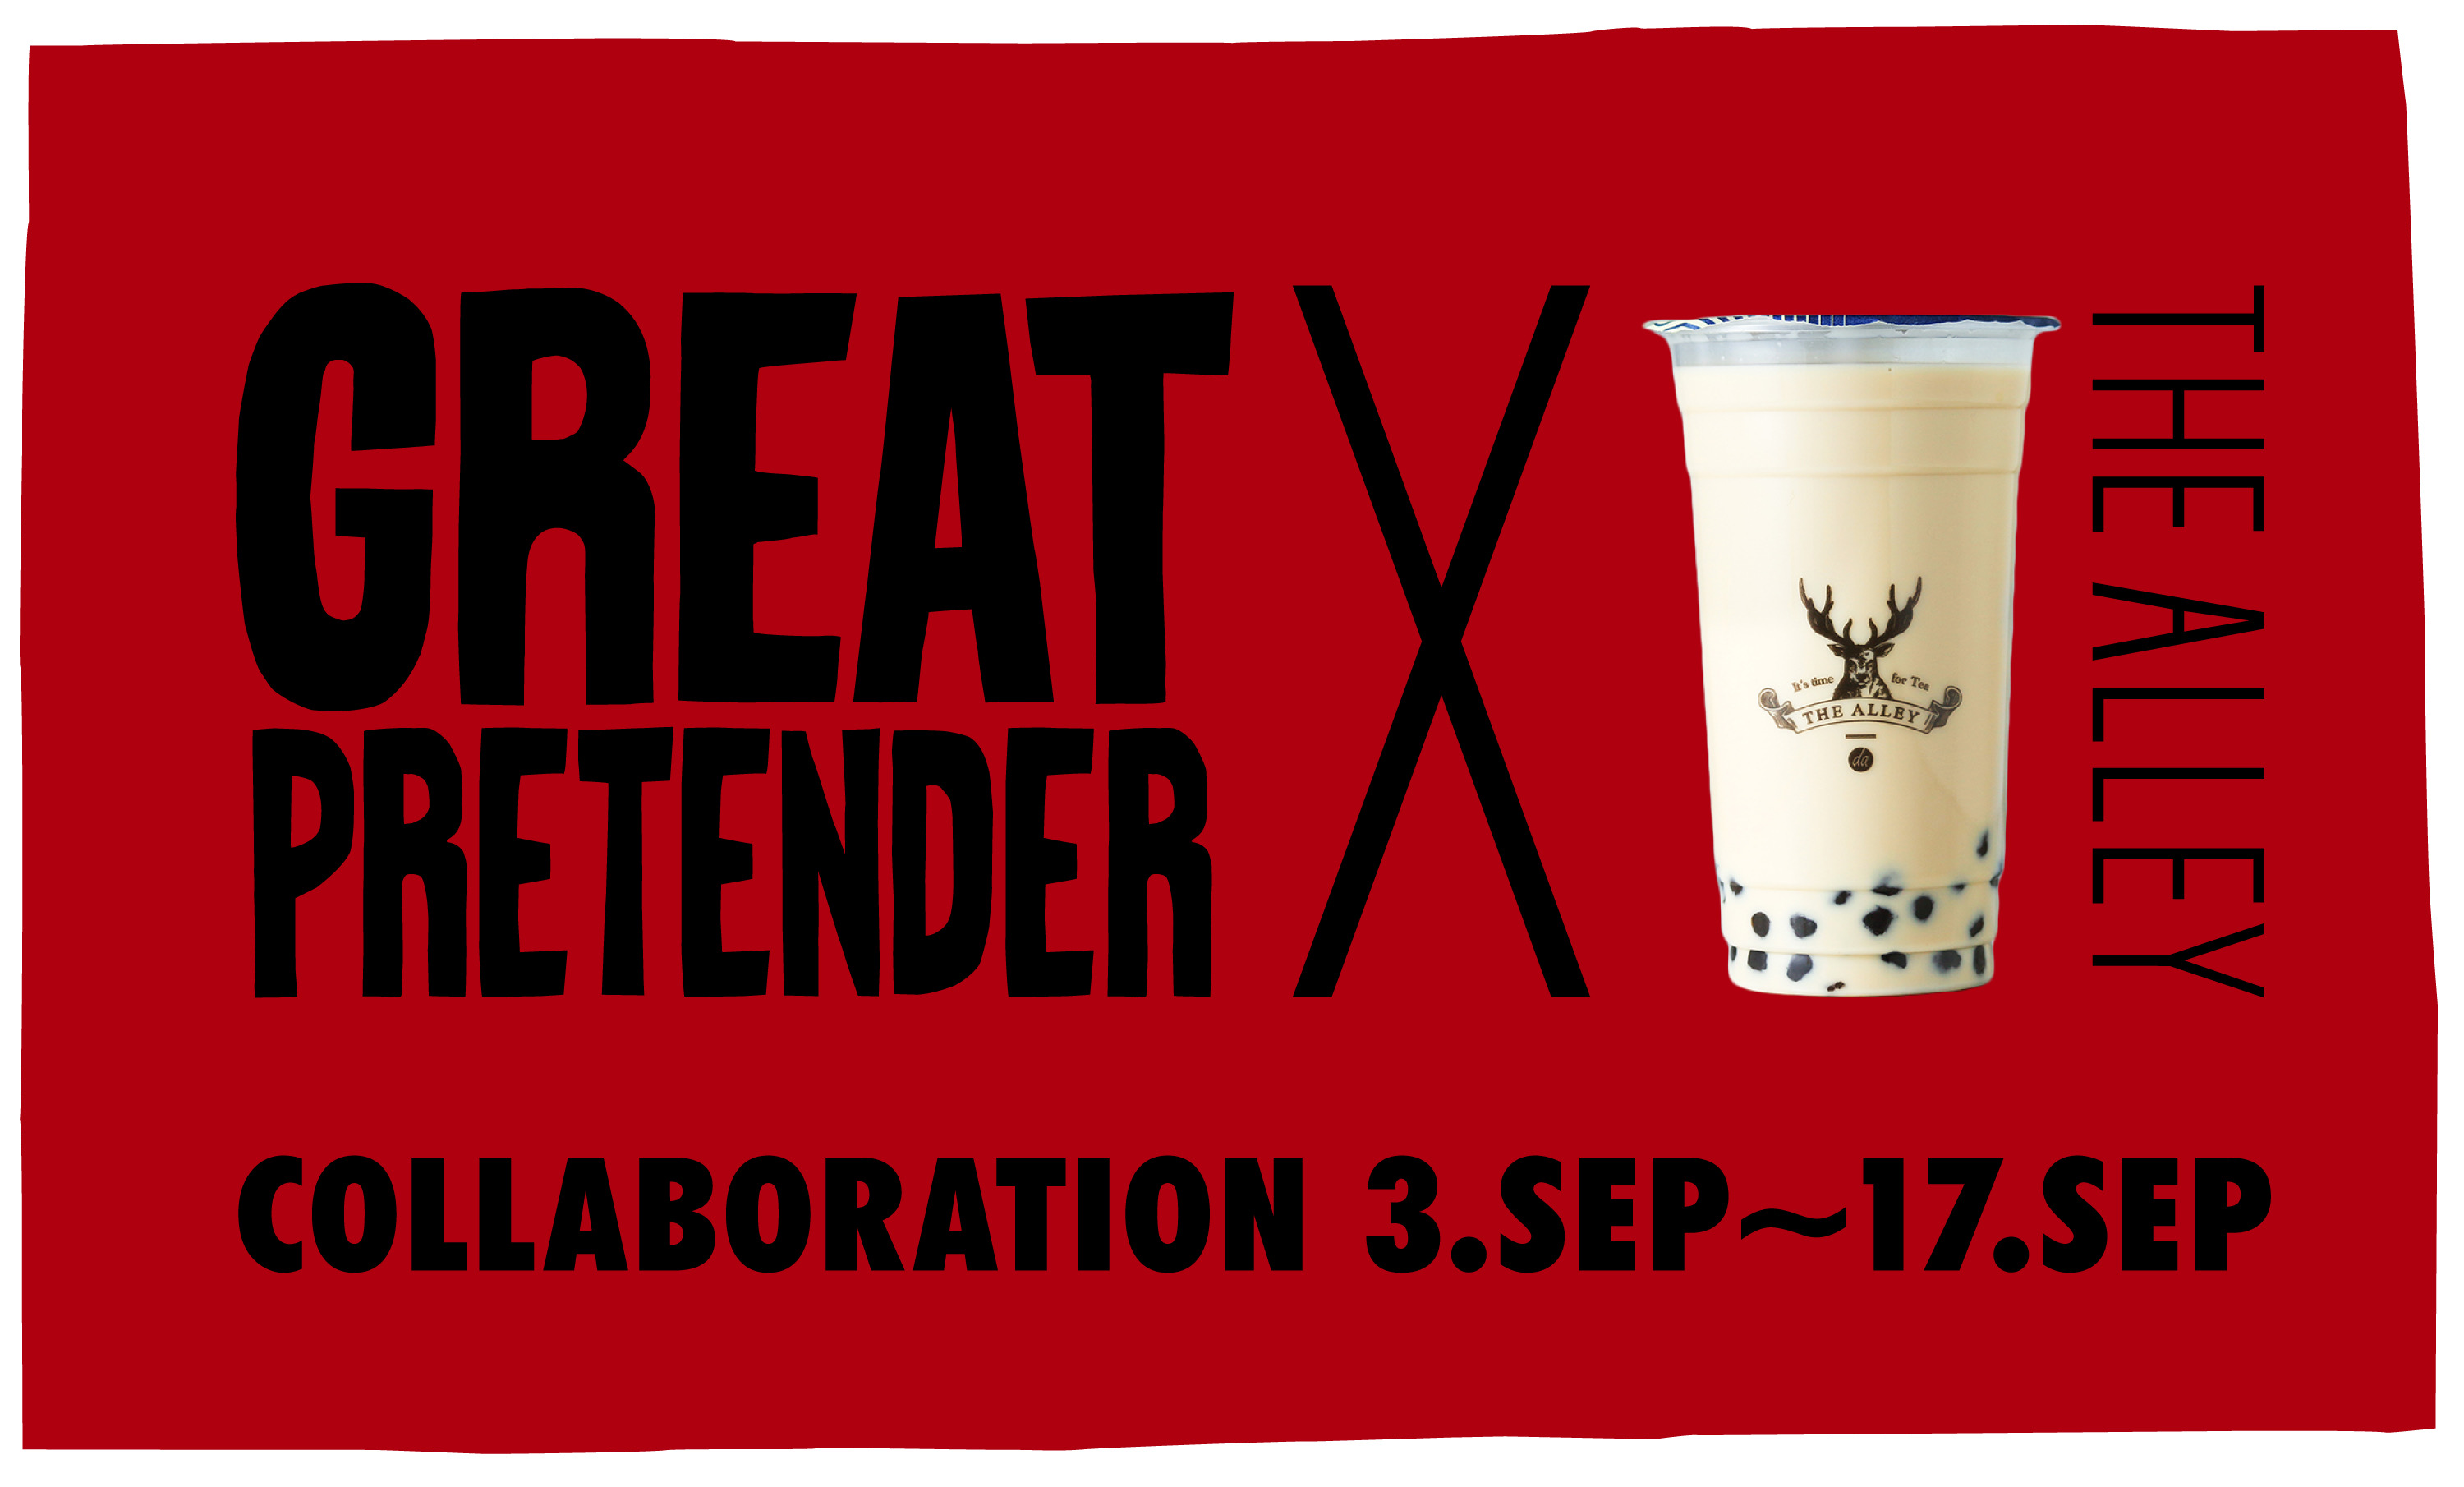 """A tea store in love with tea """"THE ALLEY"""" x animation """"GREAT PRETENDER"""" tie-up project started from 9/3 (Thu) at limited stores!"""